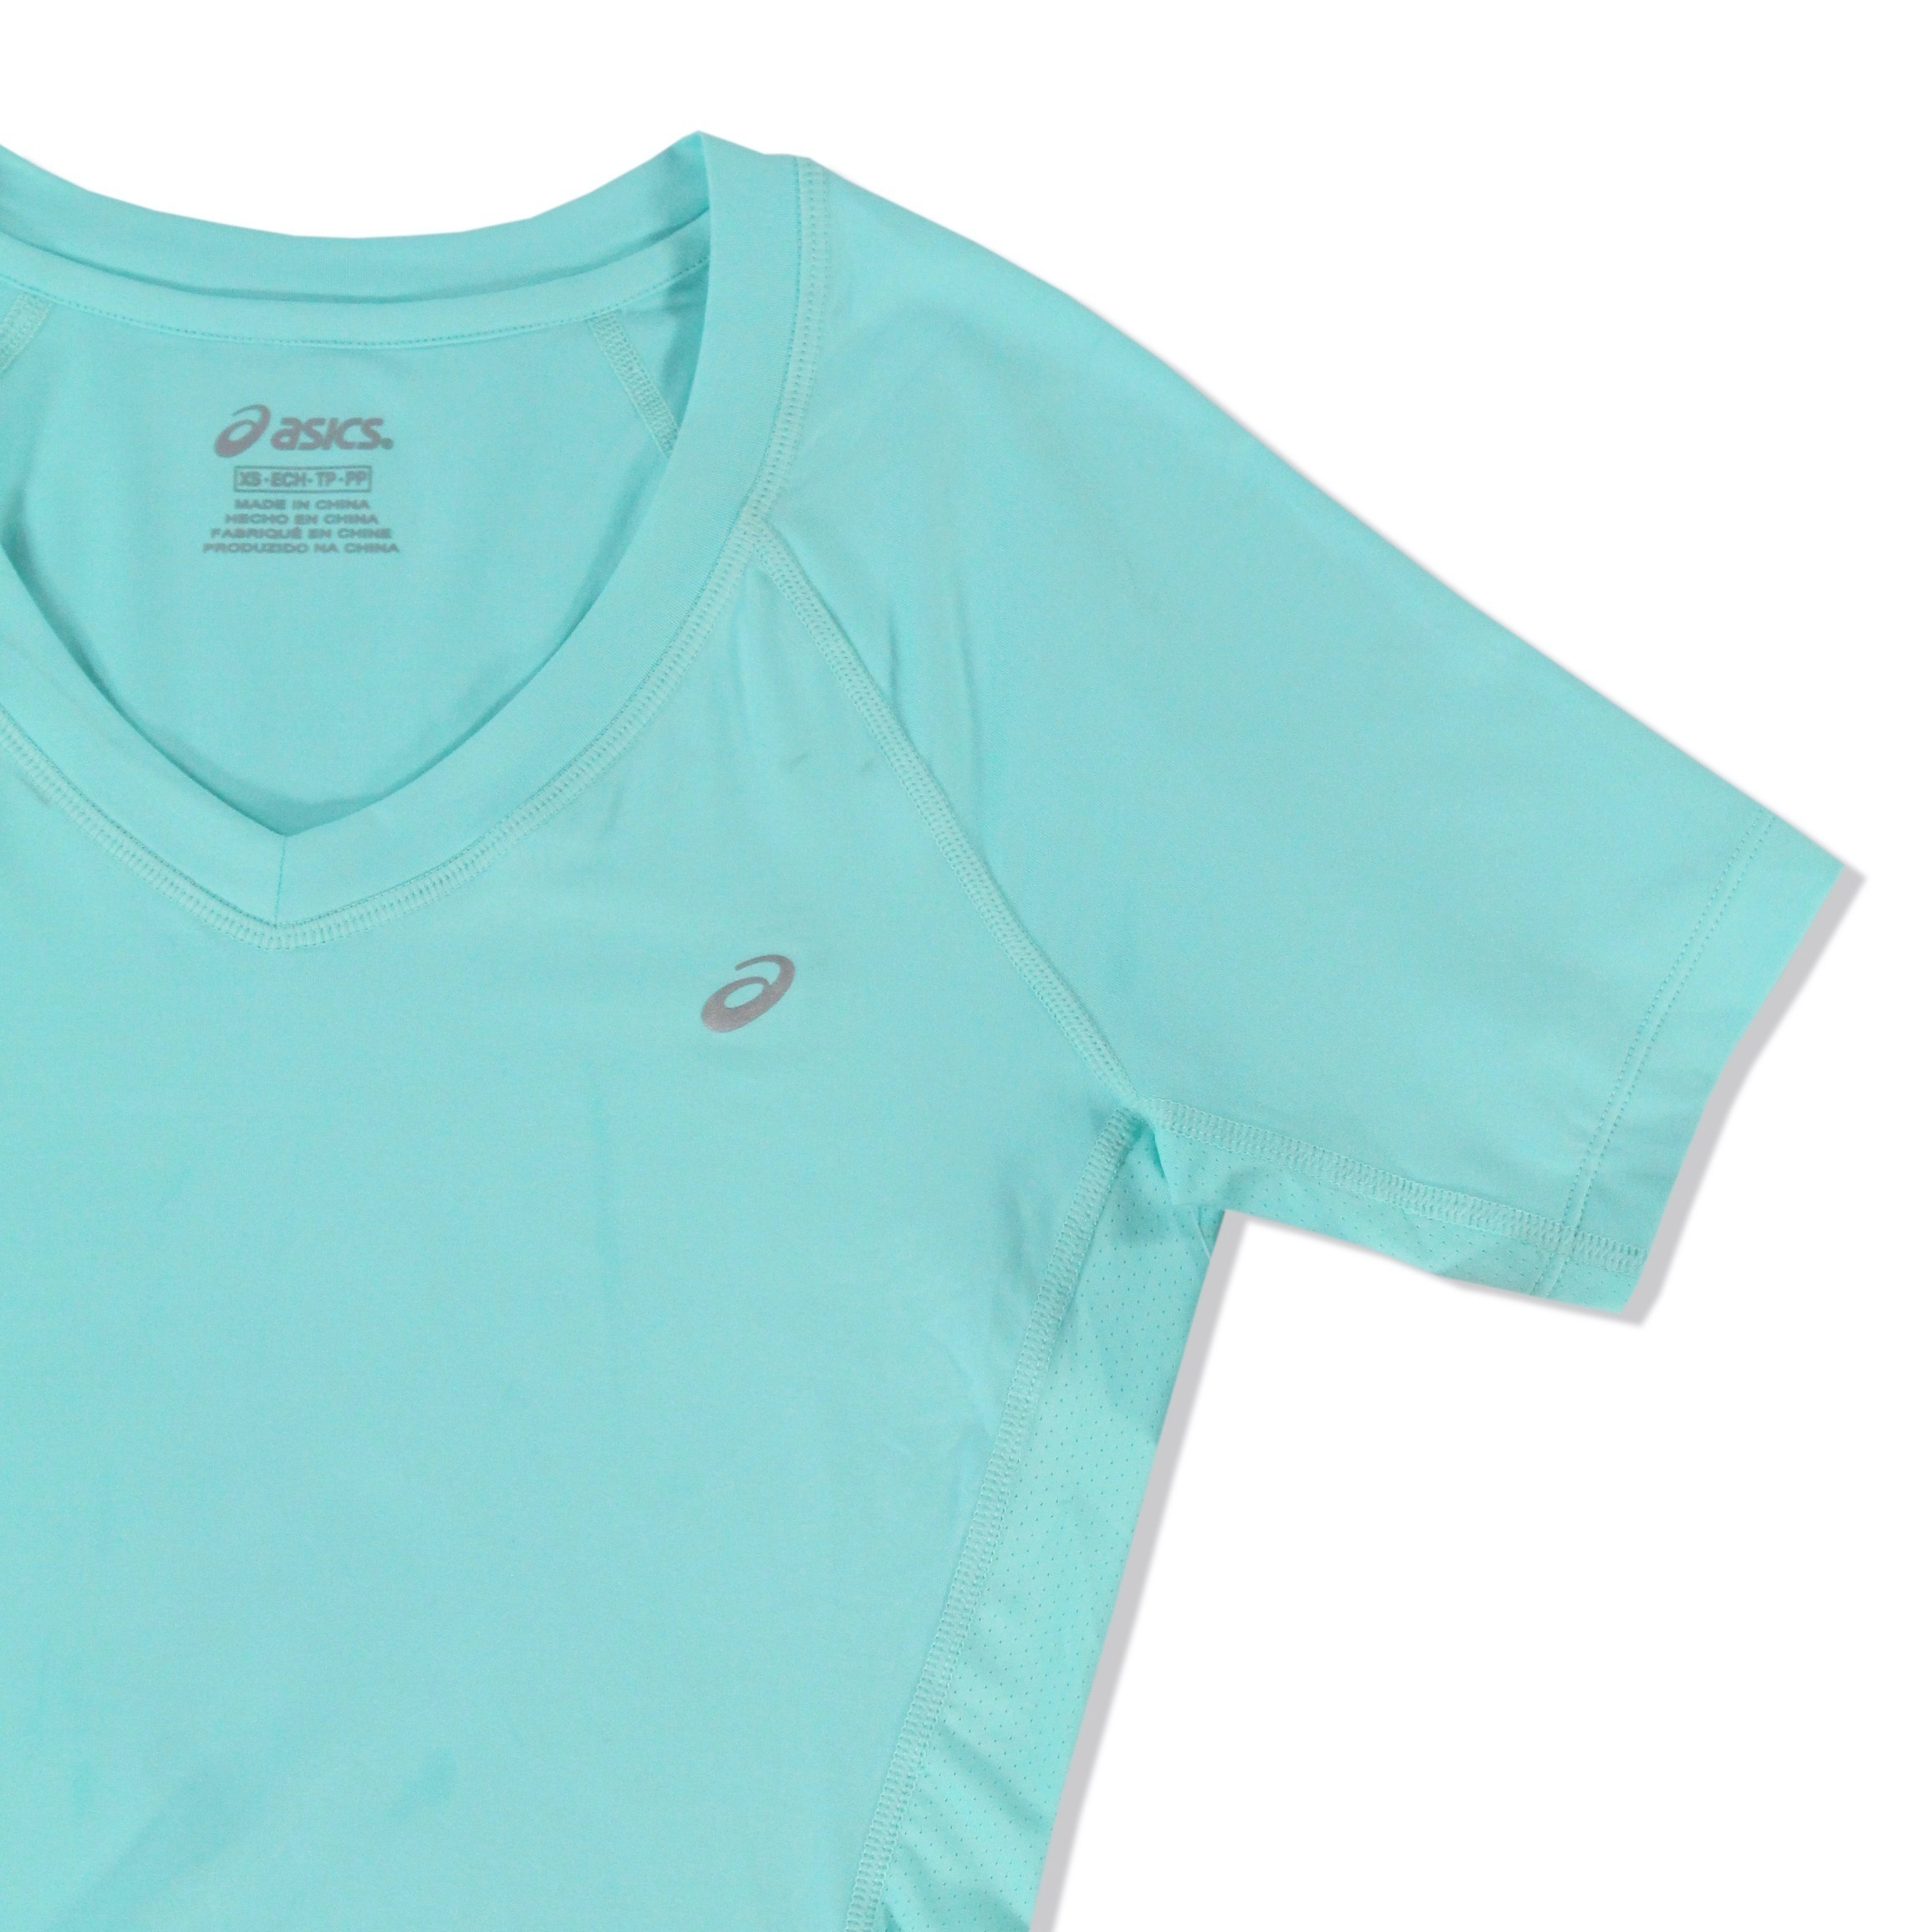 Asics-NEW-Solid-Hue-Women-039-s-V-Neck-Performance-ASX-Dry-T-Shirt-Top-38 thumbnail 4